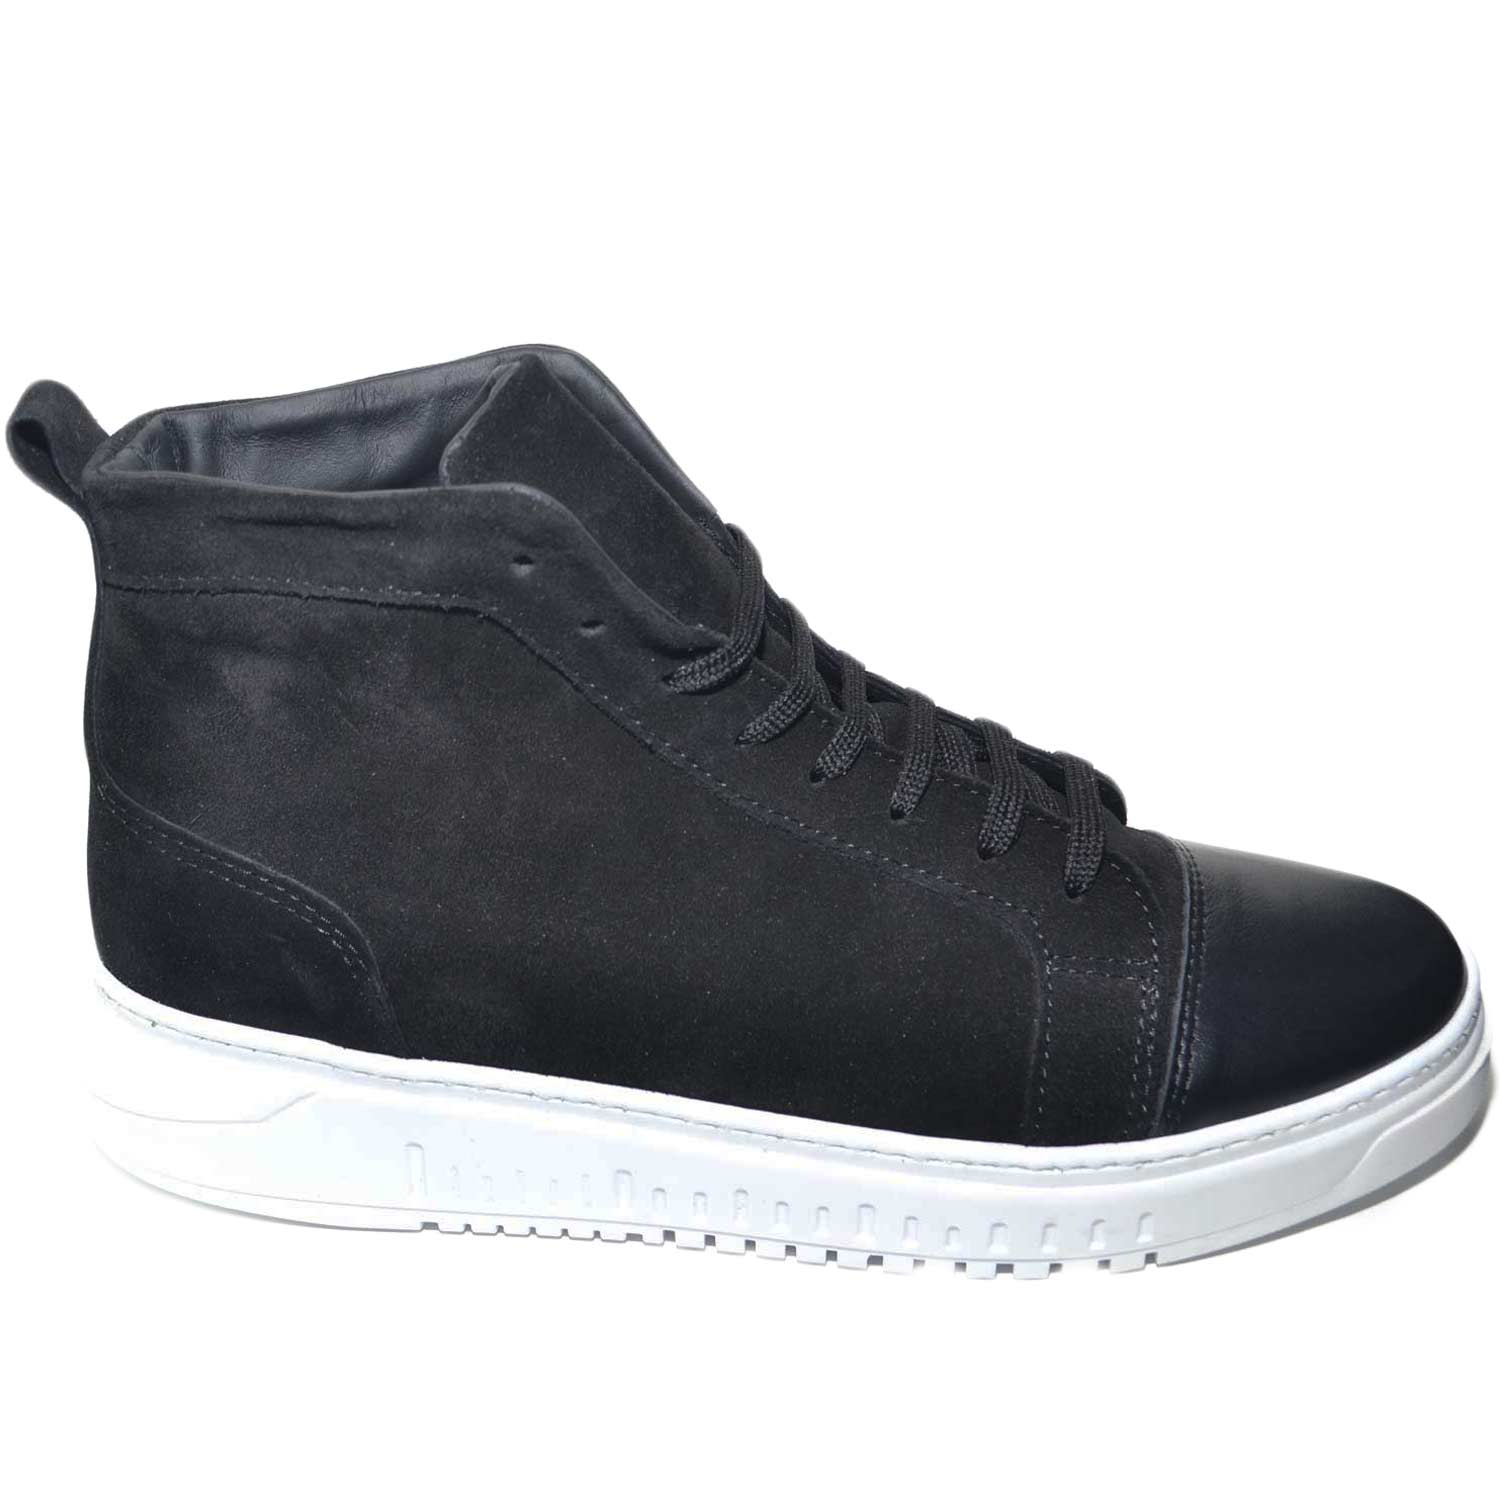 SNEAKERS UOMO ALTA A STIVALETTO IN VERA PELLE CAMOSCIO NERO CON PUNTA DI PELLE FONDO ARMY BIANCO MADE IN ITALY uomo sneakers alta Malu Shoes |